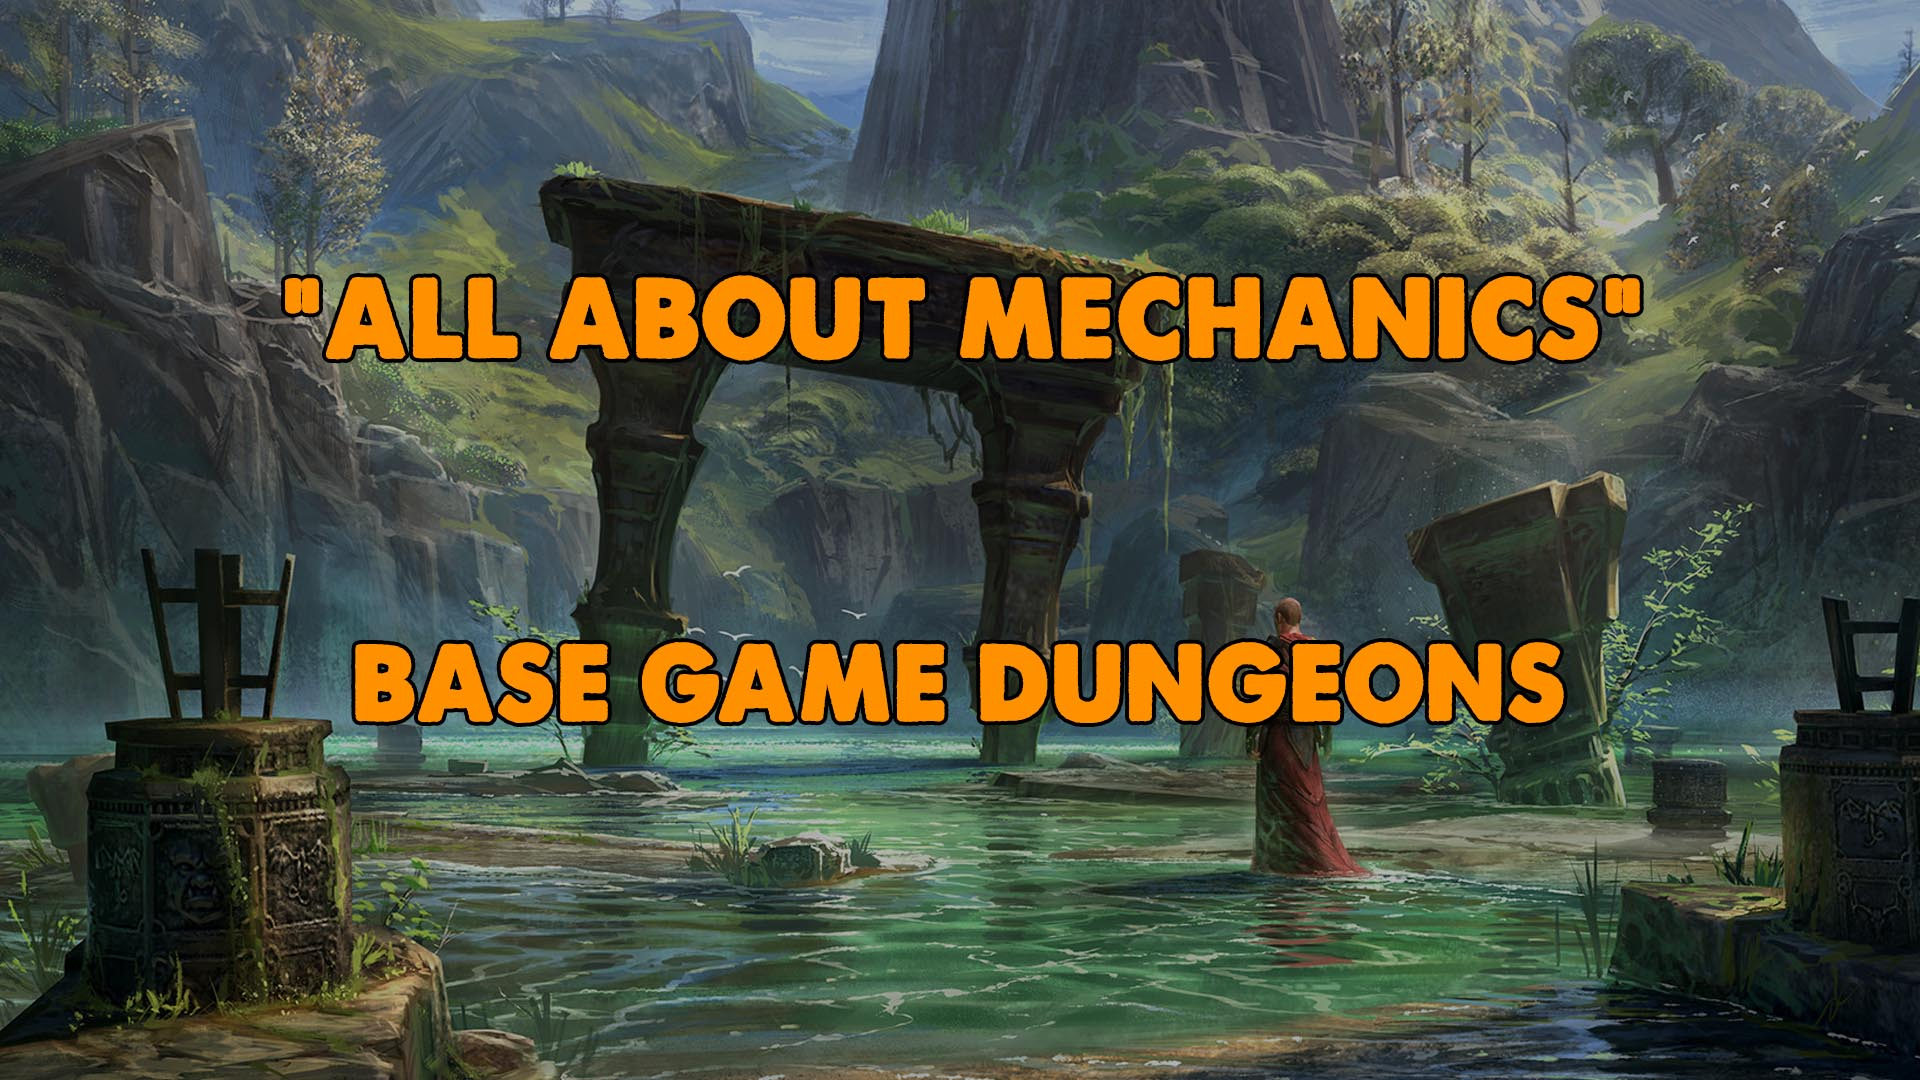 eso dungeons, elder scrolls online dungeons, eso dungeon guide, eso dungeon guides, xynode guides, xynode dungeon guide, all about mechanics